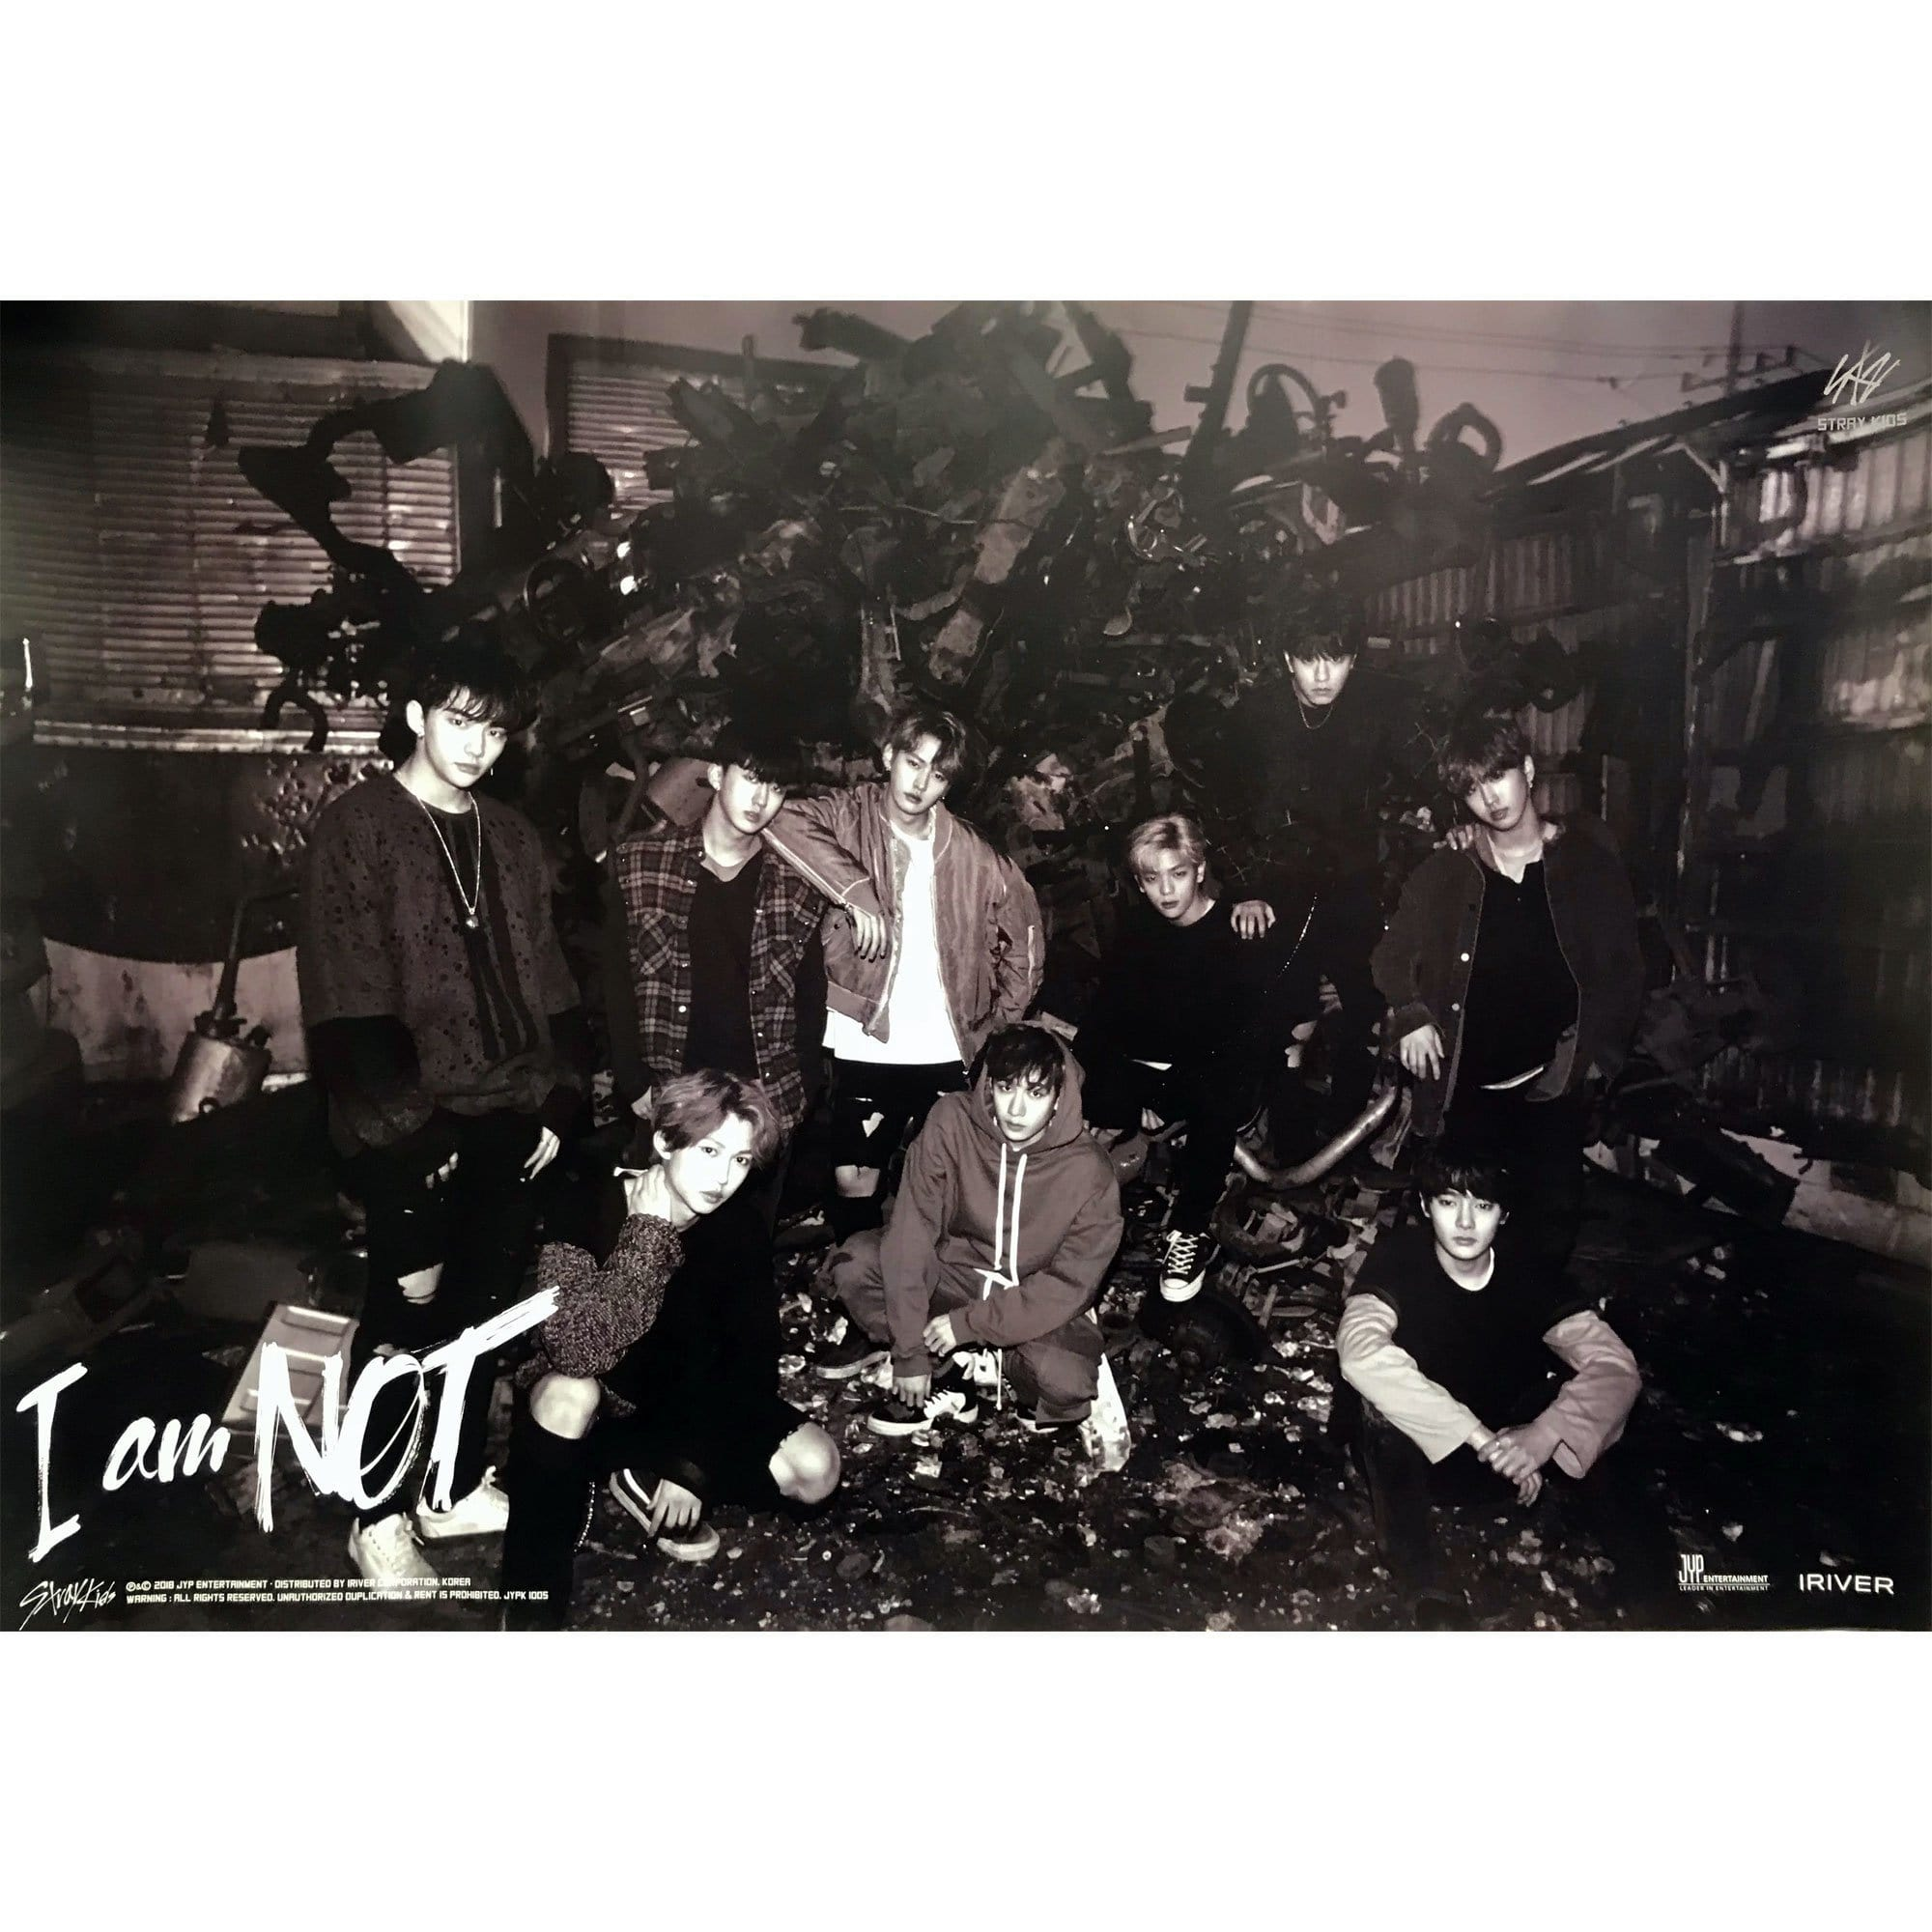 Stray kids | I AM NOT | POSTER